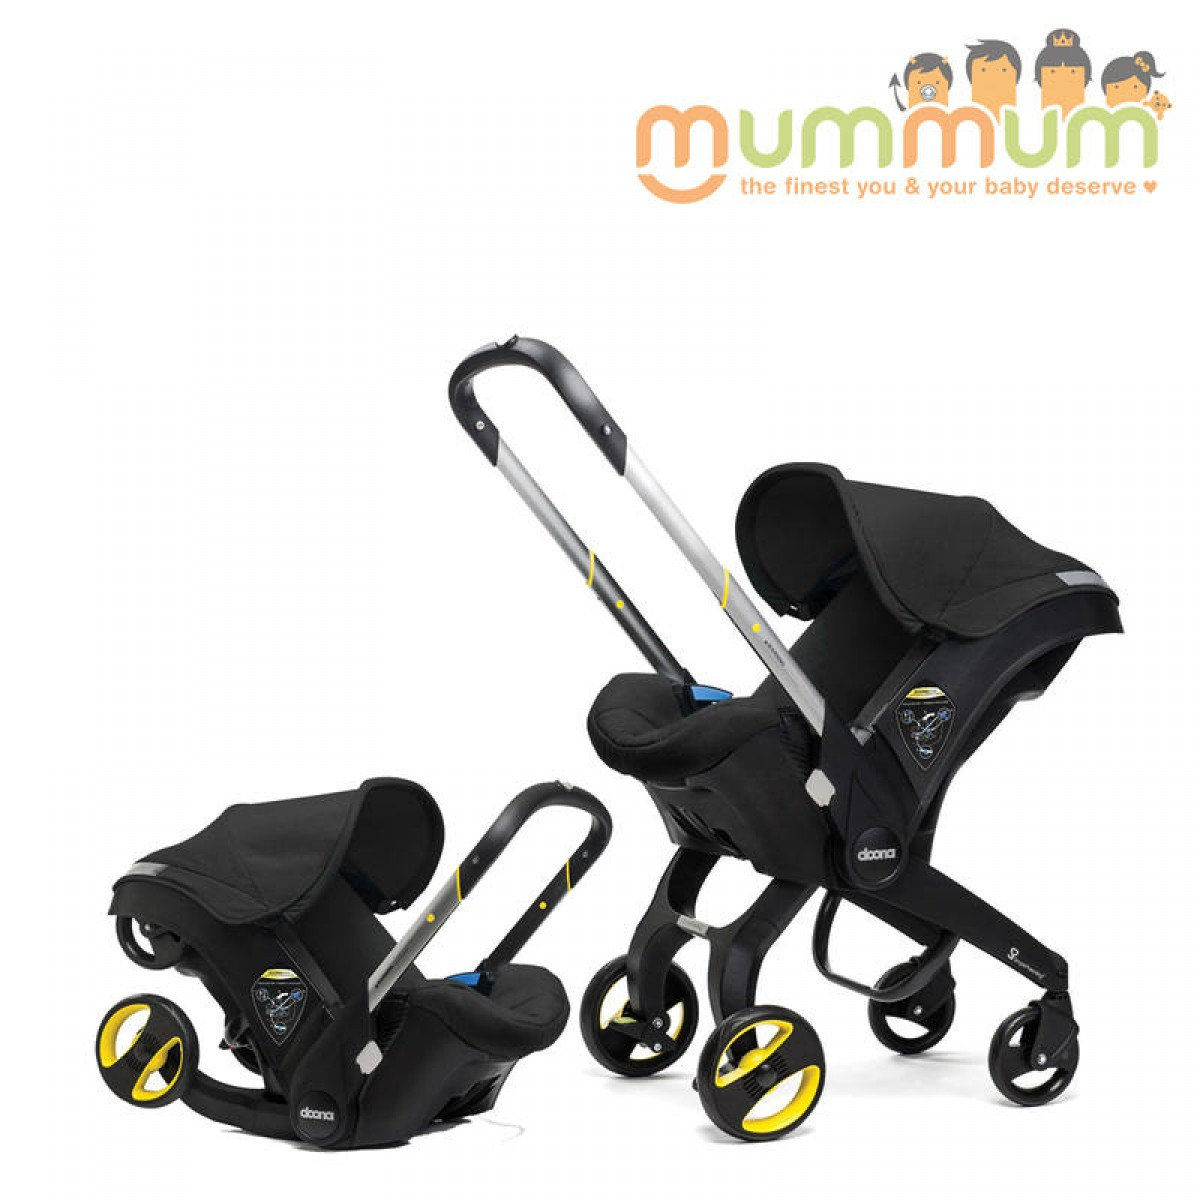 The EZ Ride 5 Travel System in includes a fixed back infant car seat with an EZ Flex-Loc stay in car base. The Baby Trend EZ Ride 5 Travel System is the perfect solution for new parents.